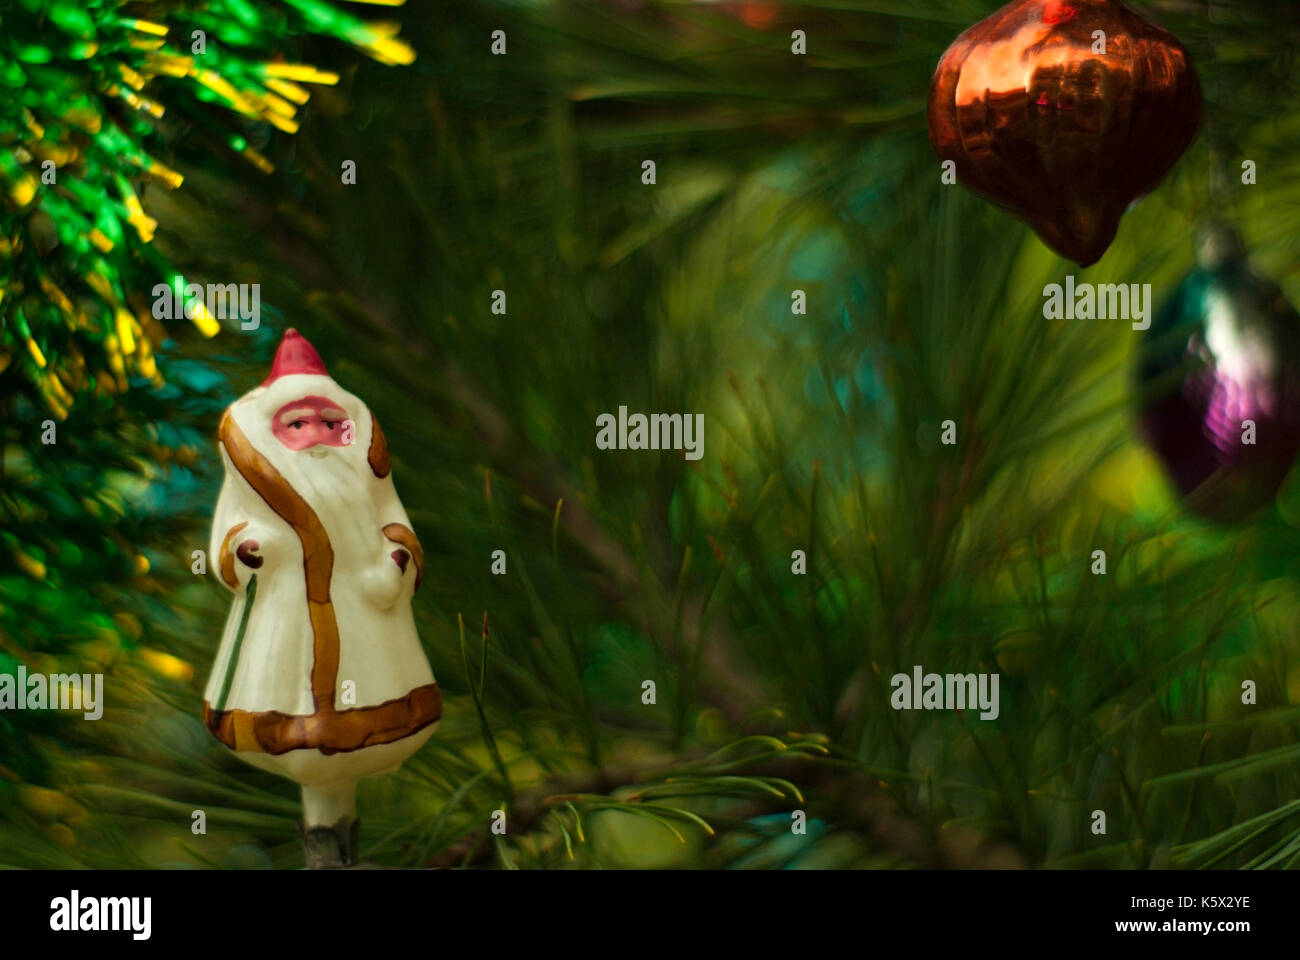 Vintage glass Christmas tree toy: Ded Moroz ('Grandfather Frost',slavic analog of Santa Claus) in the background of green branches. Blurred background - Stock Image